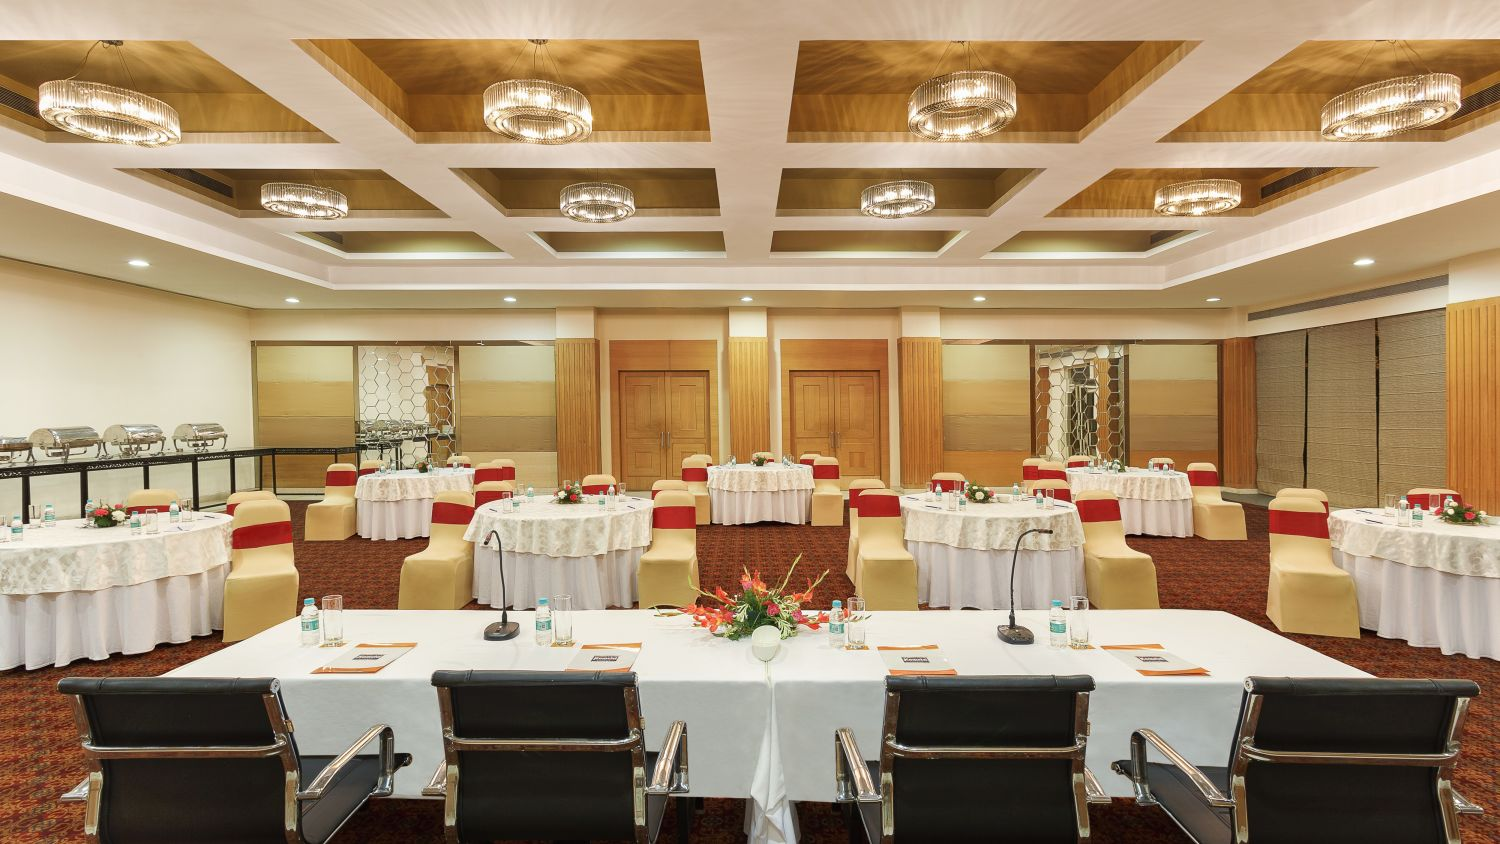 Banquet Halls, Hometel Roorkee, Business Hotel in Roorkee 6